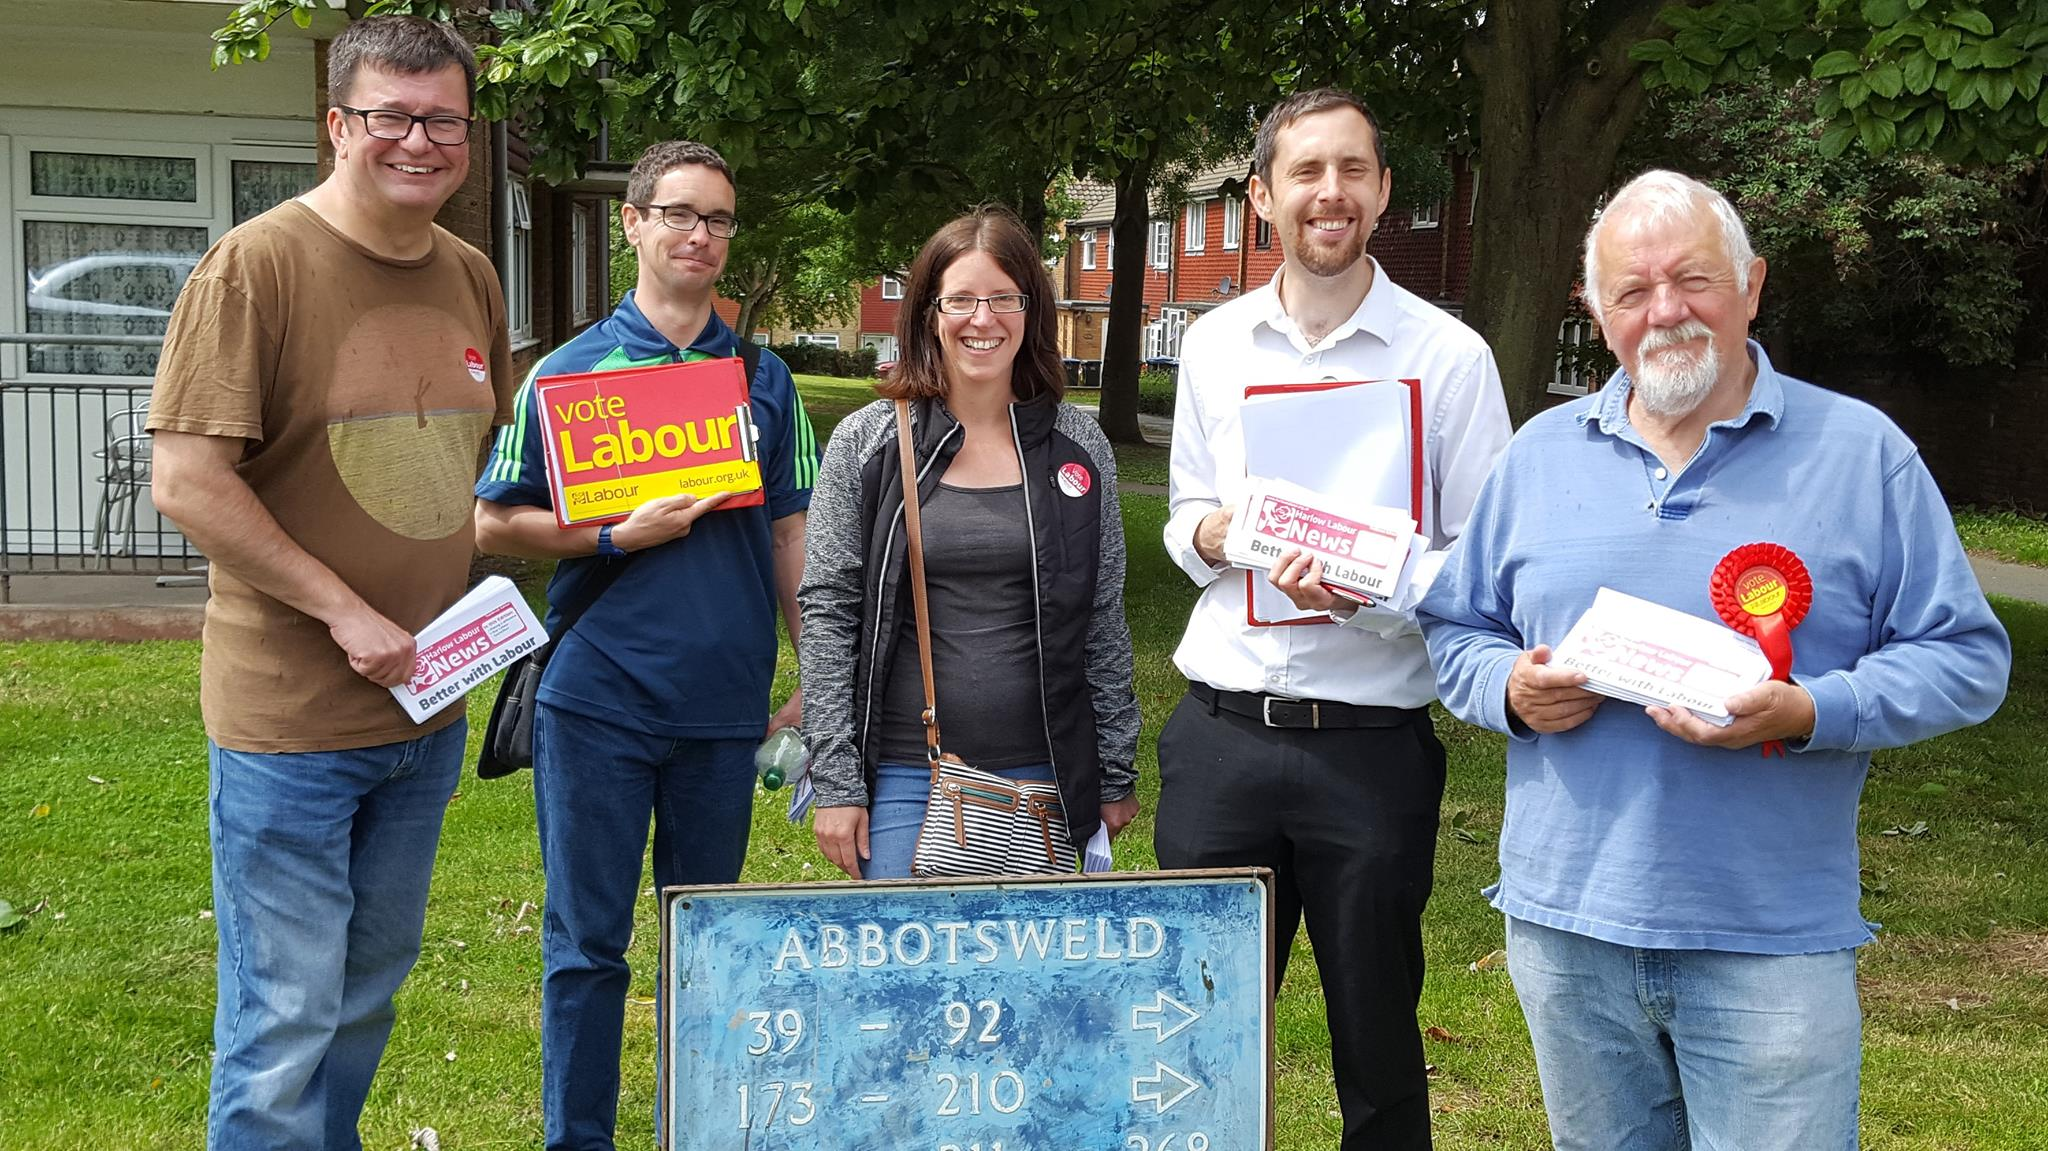 Abbotsweld Canvassing Session